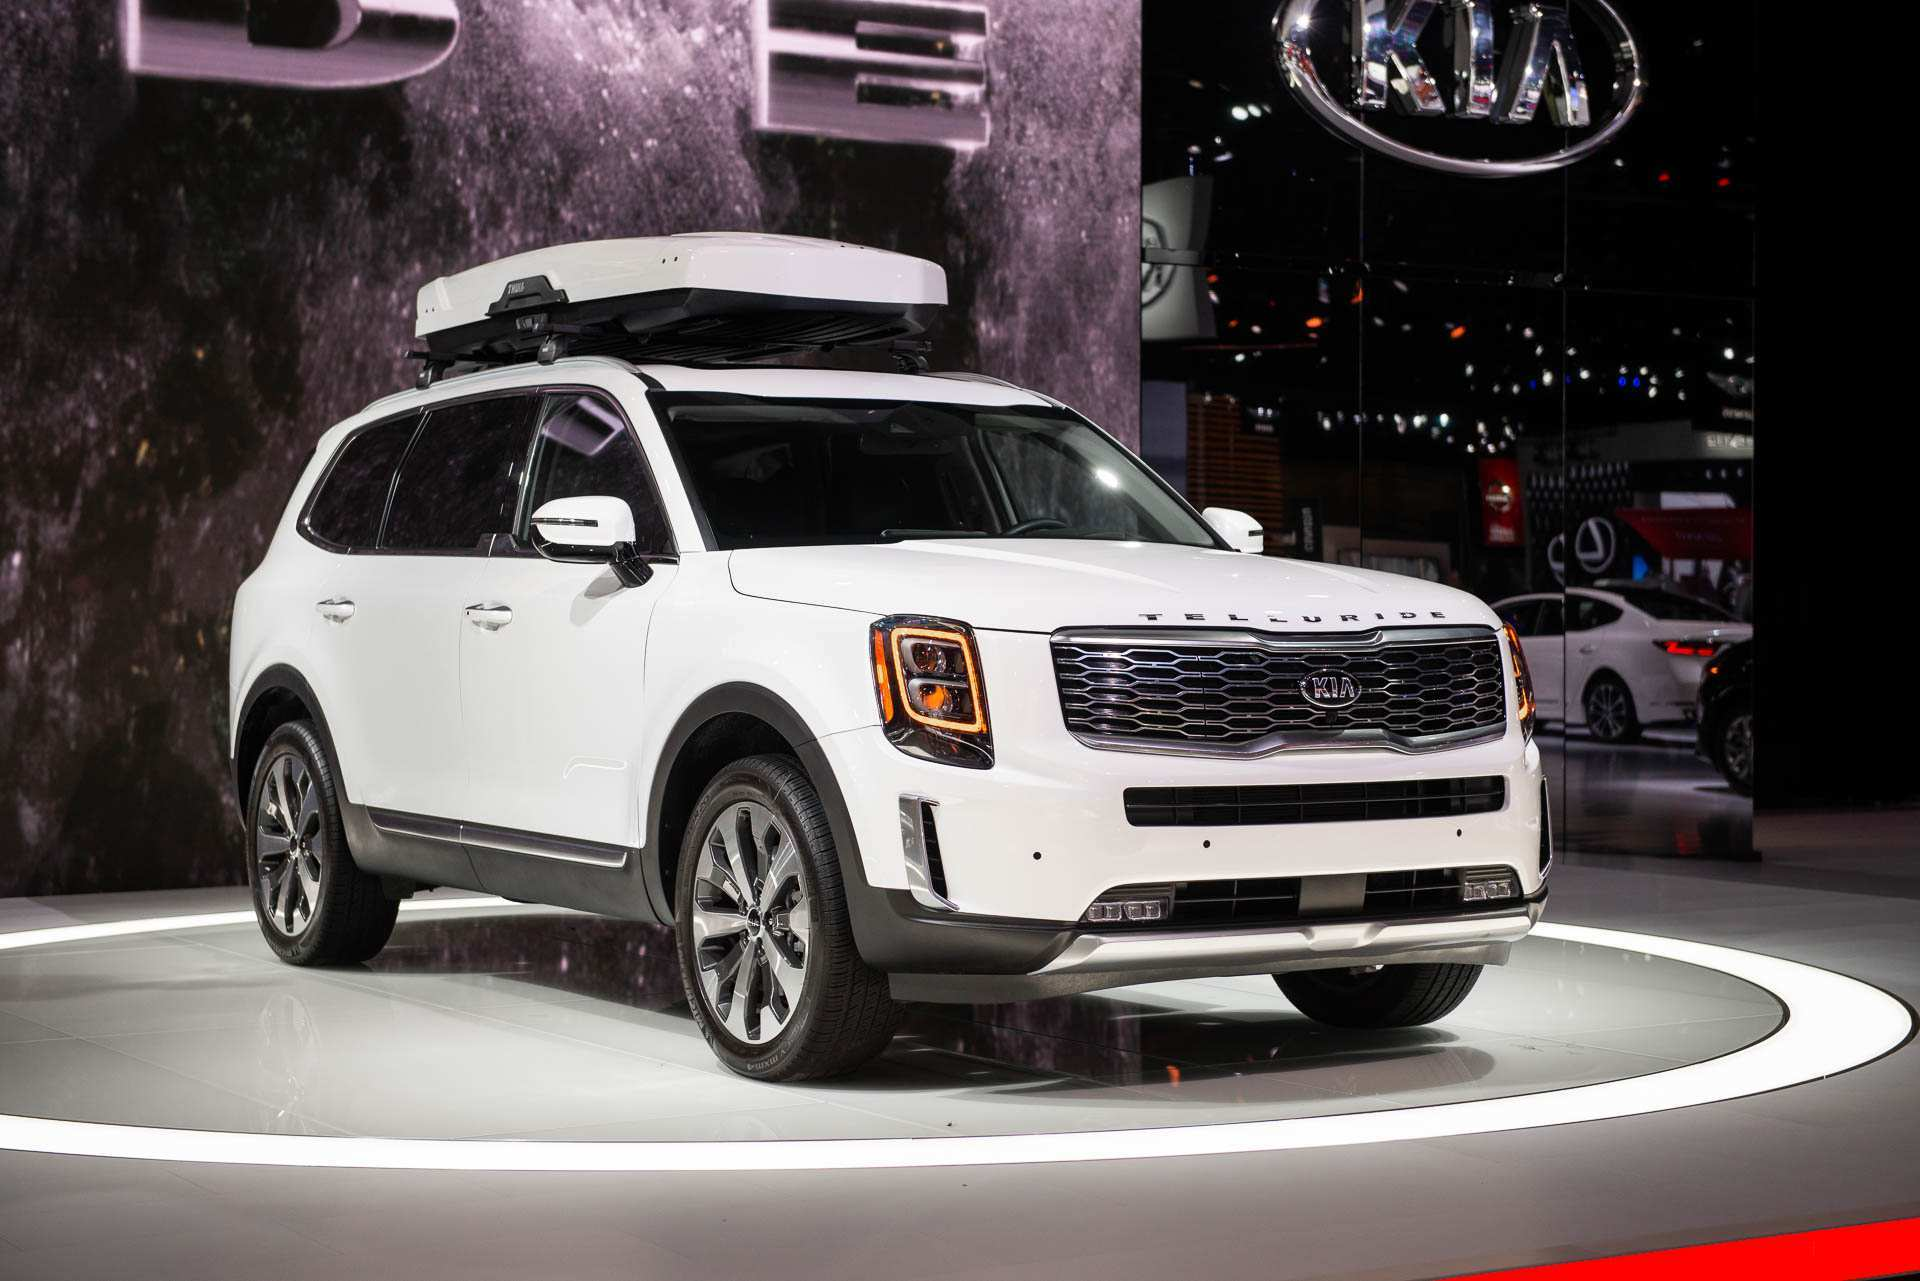 64 The Best Kia Large Suv 2020 Release Date And Concept